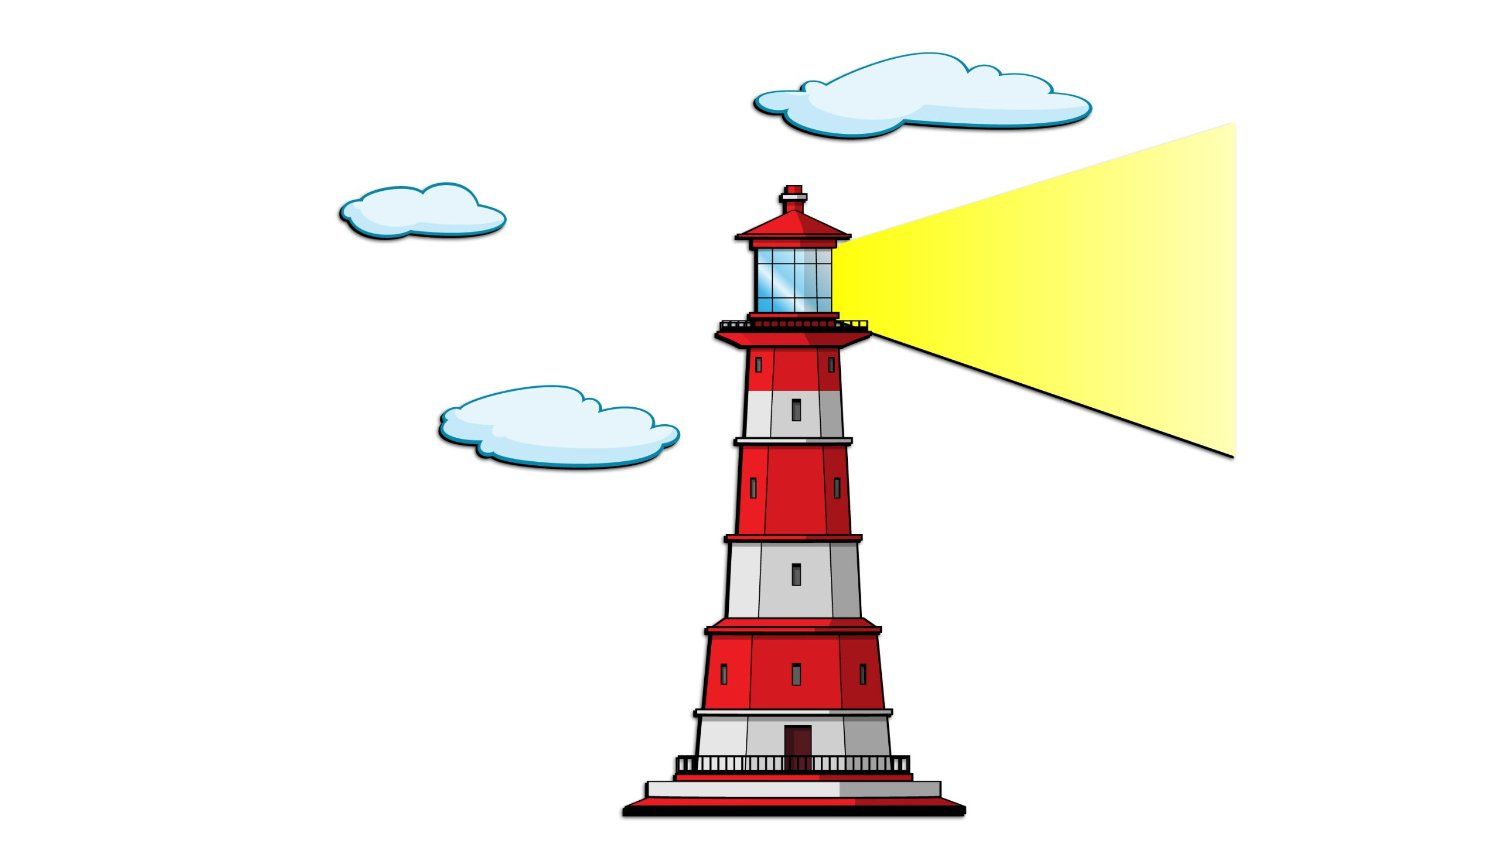 Typical Cartoon Lighthouse Download Roya-Typical Cartoon Lighthouse Download Royalty Free Vector Eps-7